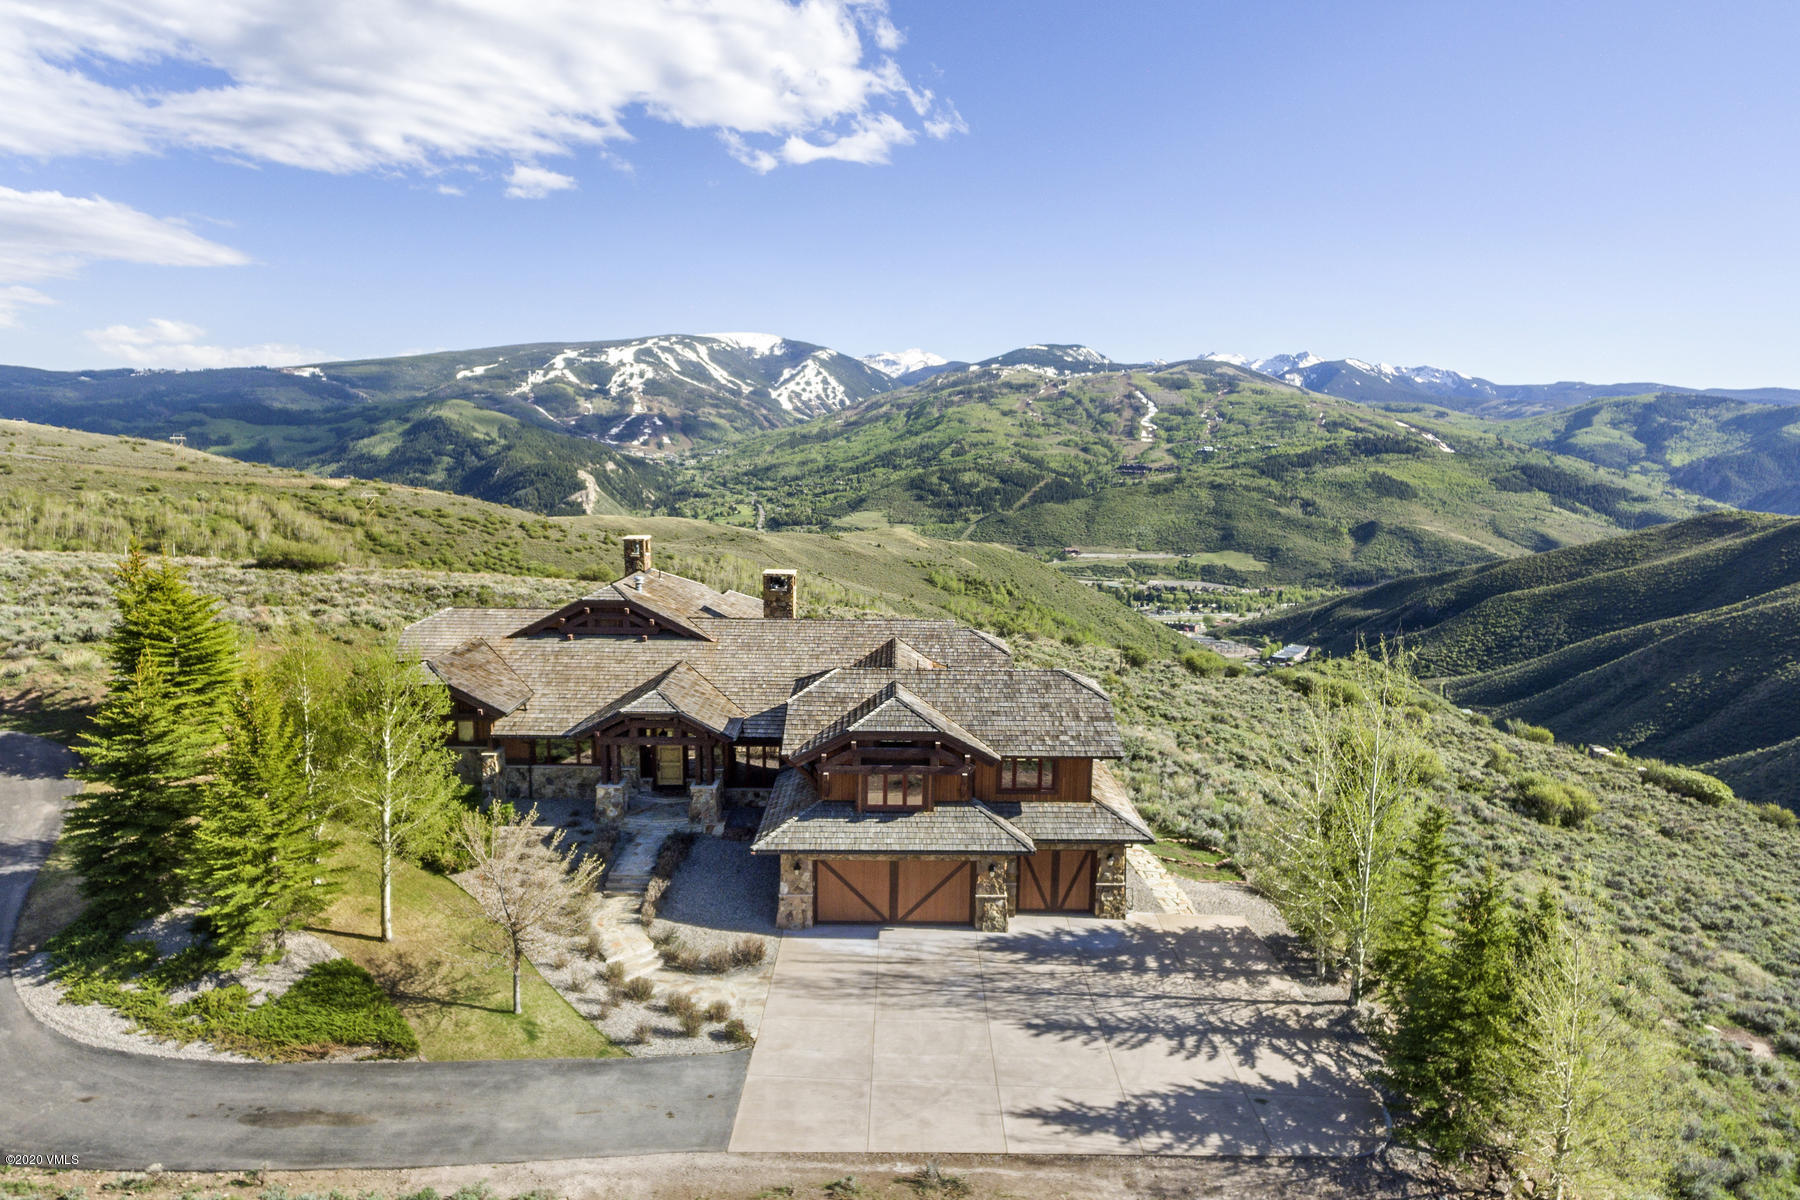 Nestled high on an alpine hillside with grandiose, unobstructed views of Beaver Creek, Bachelor Gulch, and the Sawatch mountain range, this 5-Bedroom, 7-Bathroom mountain retreat rests on 4.71 acres in the coveted Mountain Star community. Boasting its own private gate, this exceptional estate property welcomes you to a view that will take your breath away. A sensible and practical floor plan provides main-floor living with an expansive master suite, 5-piece master bath, a gourmet chef's kitchen and pantry, sizable office, great room, dining room, hearth room, and five fireplaces. Entertain guests with multiple living spaces, a wet bar, wine cellar, and two levels of outdoor living space. The upper deck provides for an intimate setting, while the patio space walks out to a flat and expansive yard, with stunning mountain views in all directions. Please visit mls.1305Wildwood.com for more photos and details.